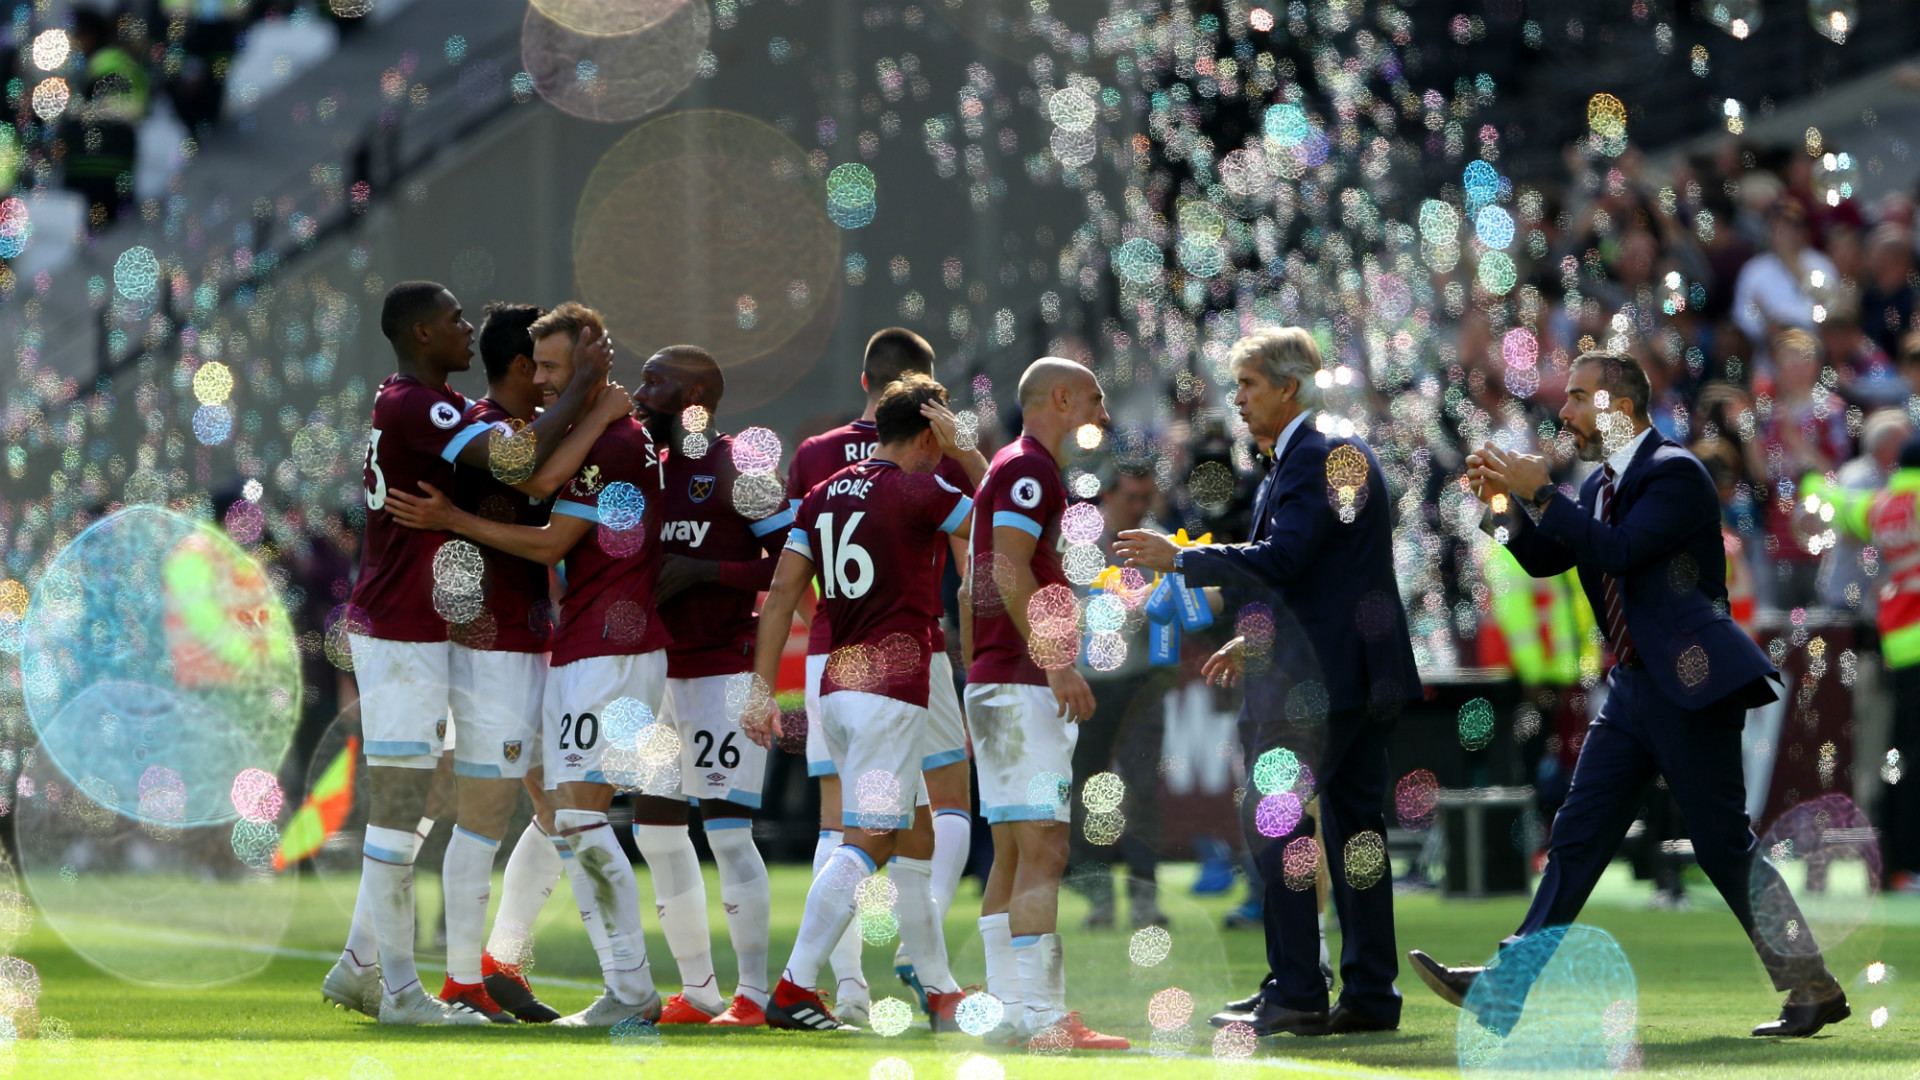 https://images.daznservices.com/di/library/GOAL/18/35/west-ham-2018-19_17p0uh6bkba1g1k4rfs0mxe3wh.jpg?t=1323154245